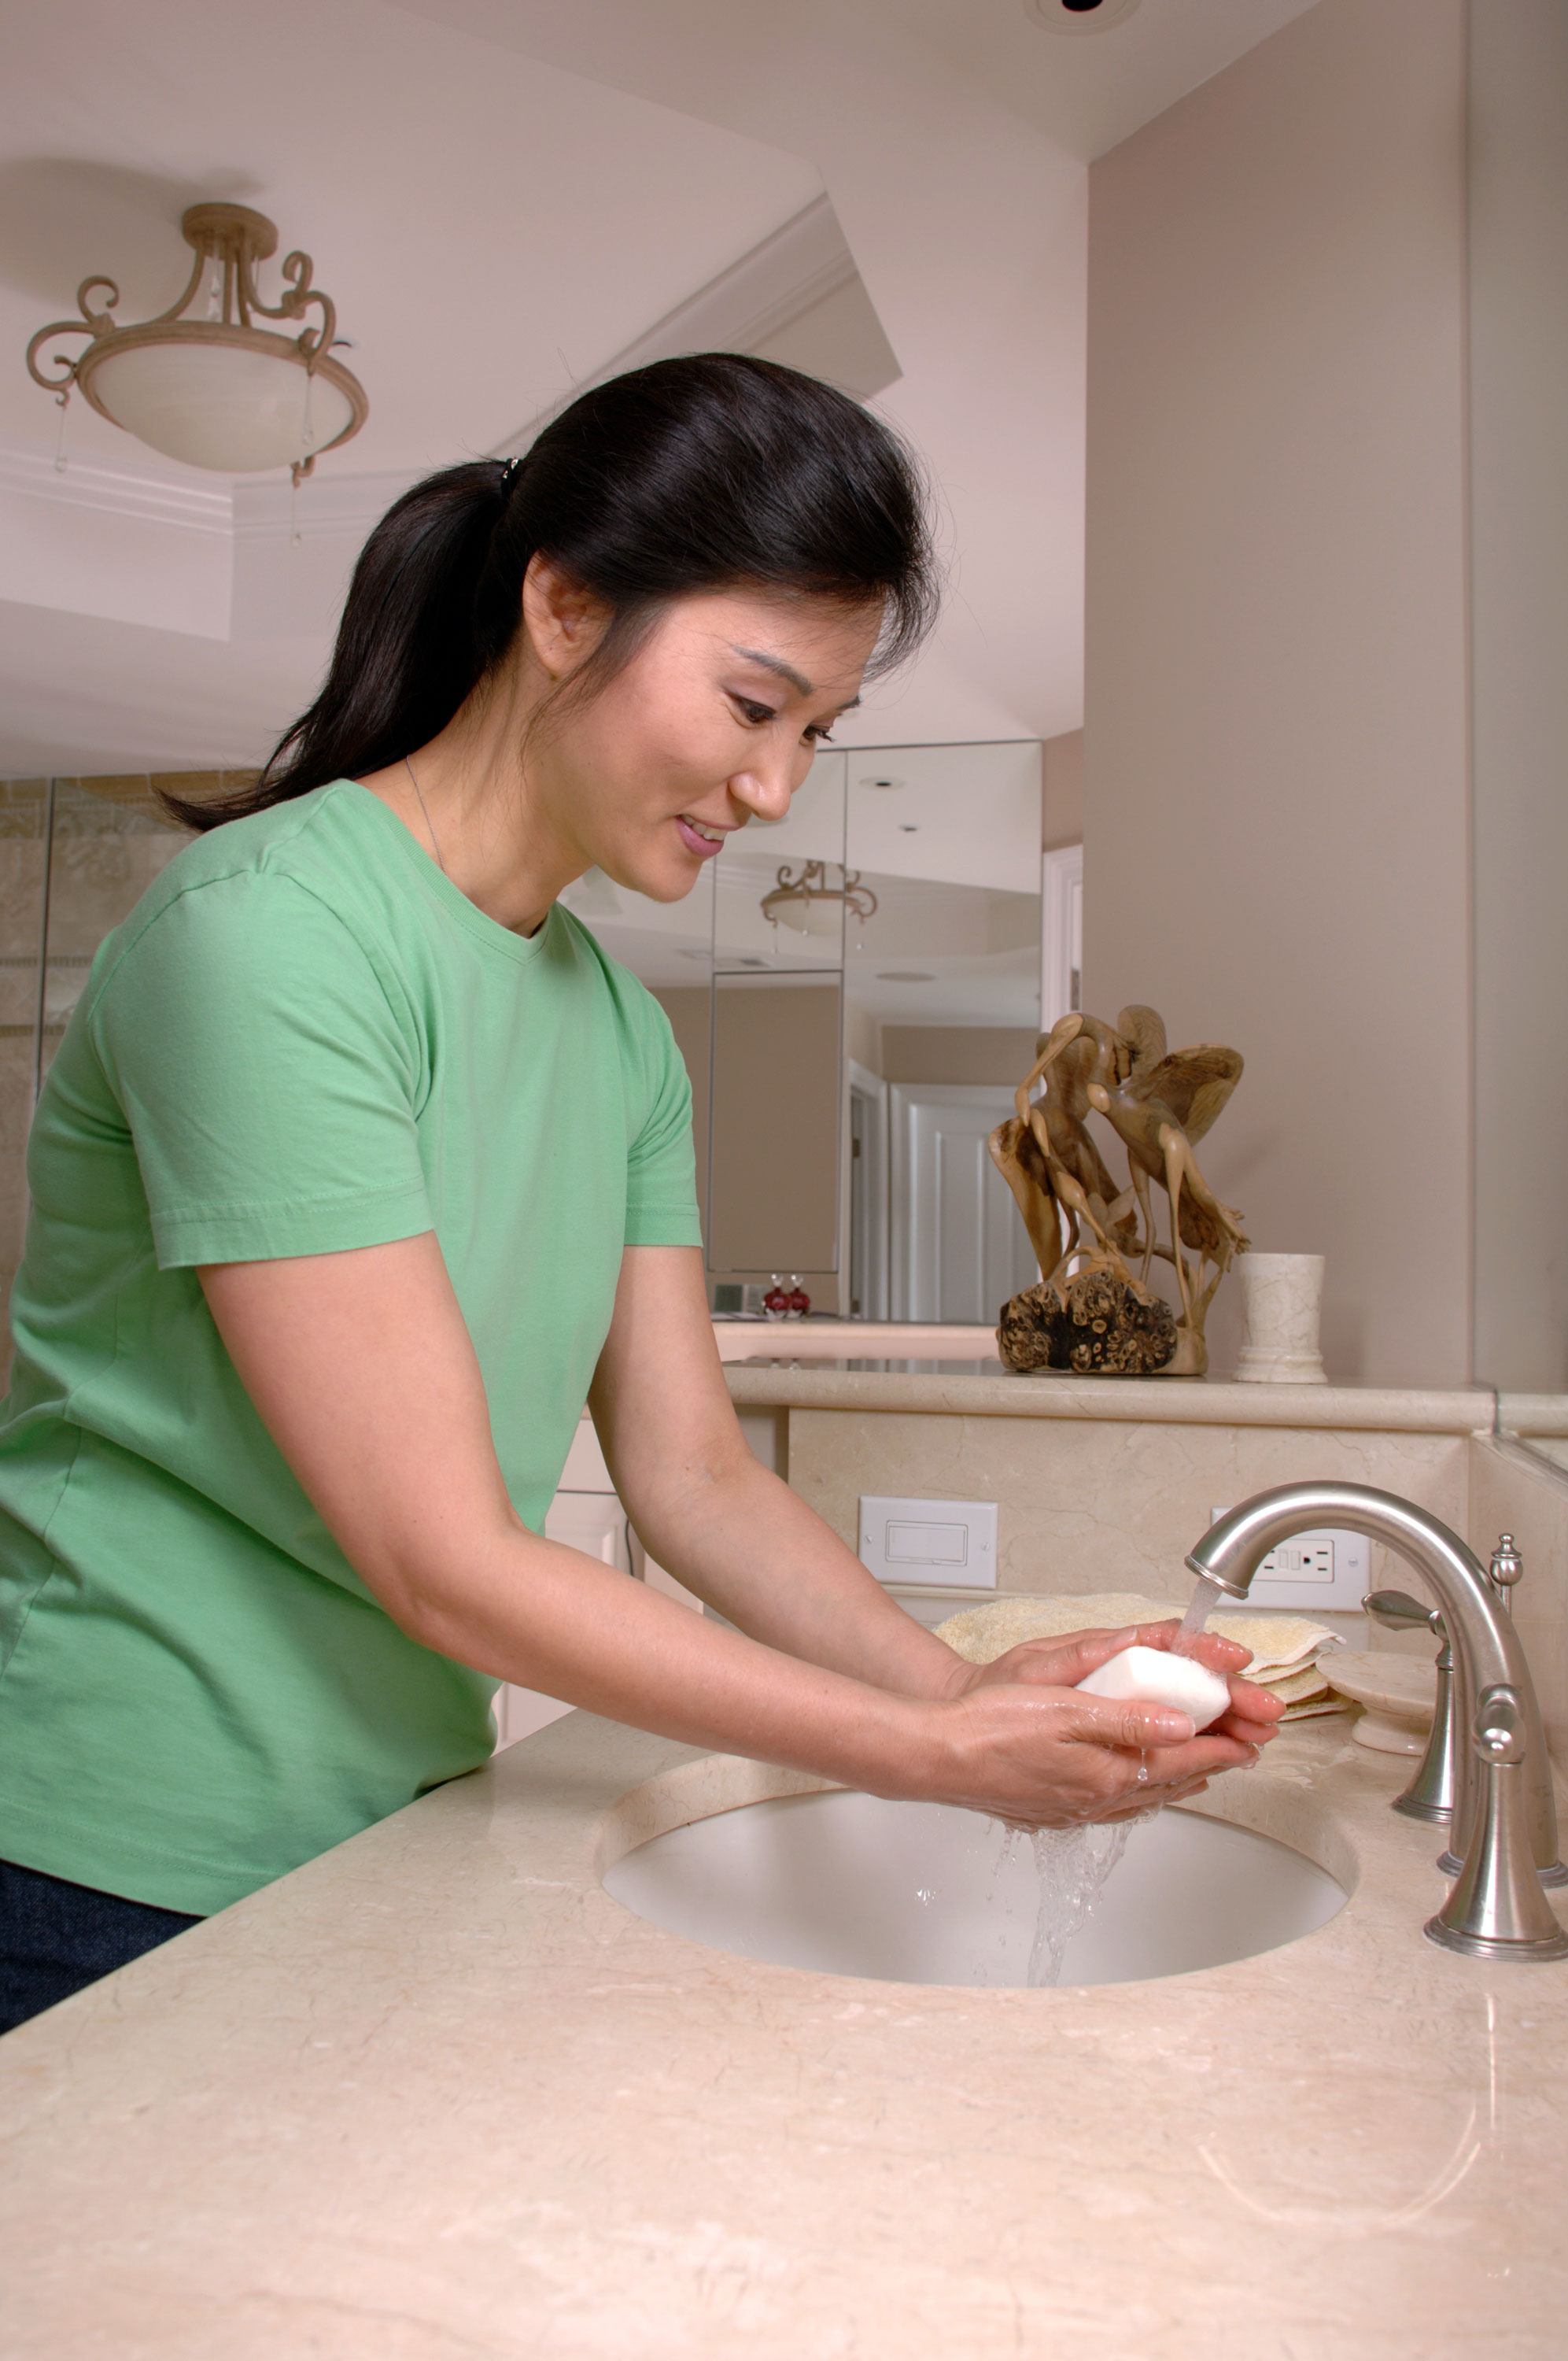 Woman washing hands with soap in the sink.